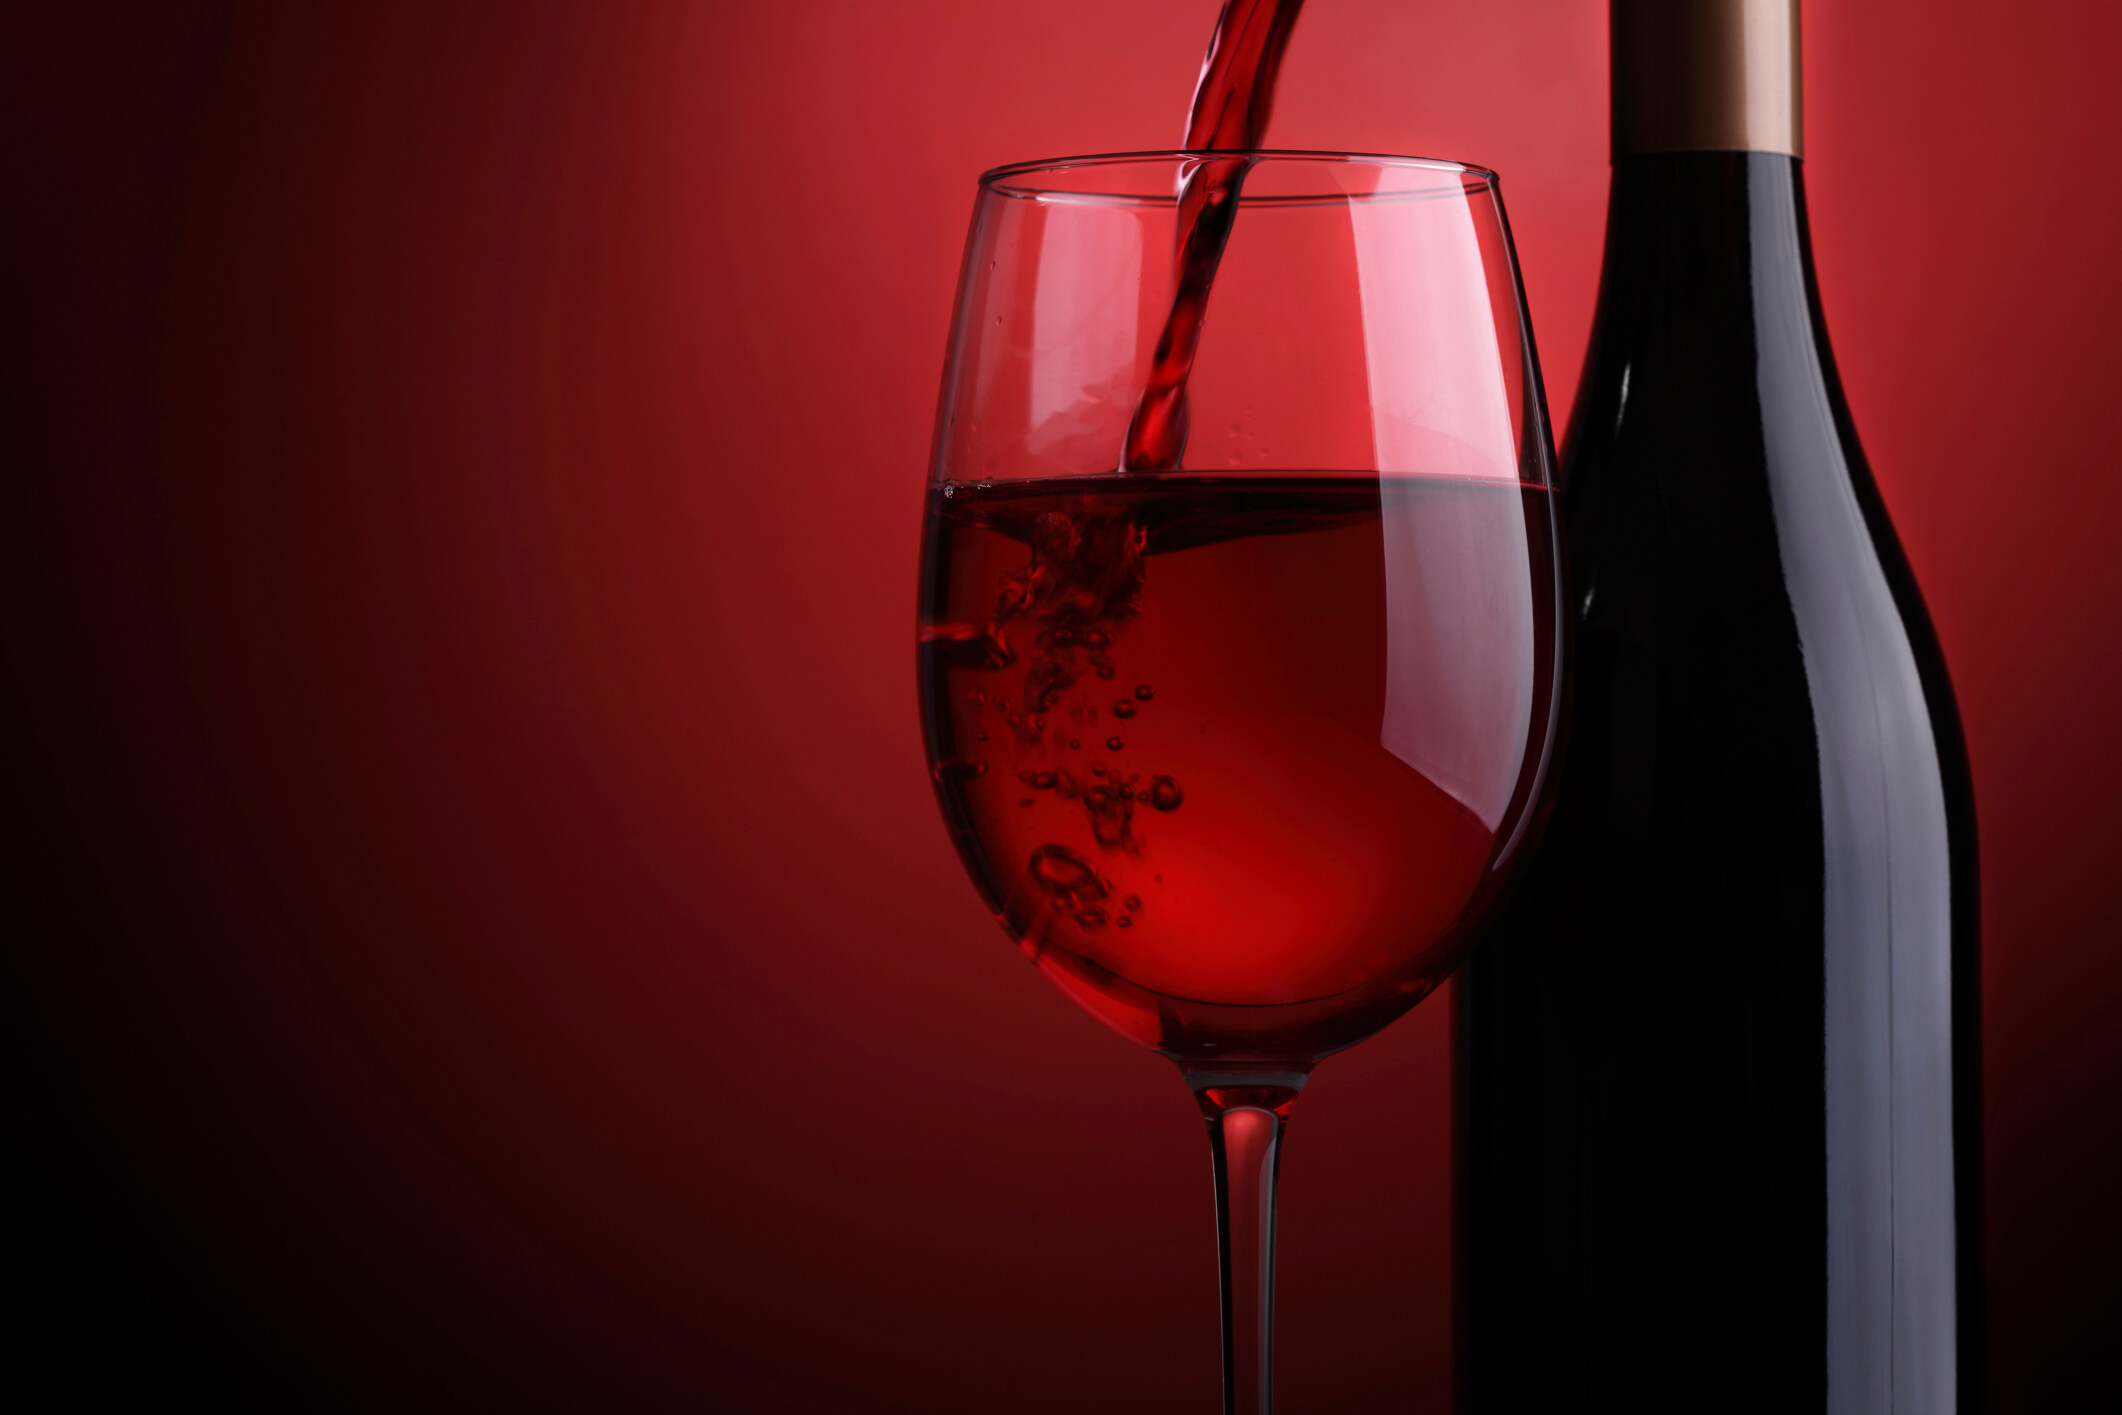 Look Up Vin >> About Time: You Understood Red Wine | About Time Magazine